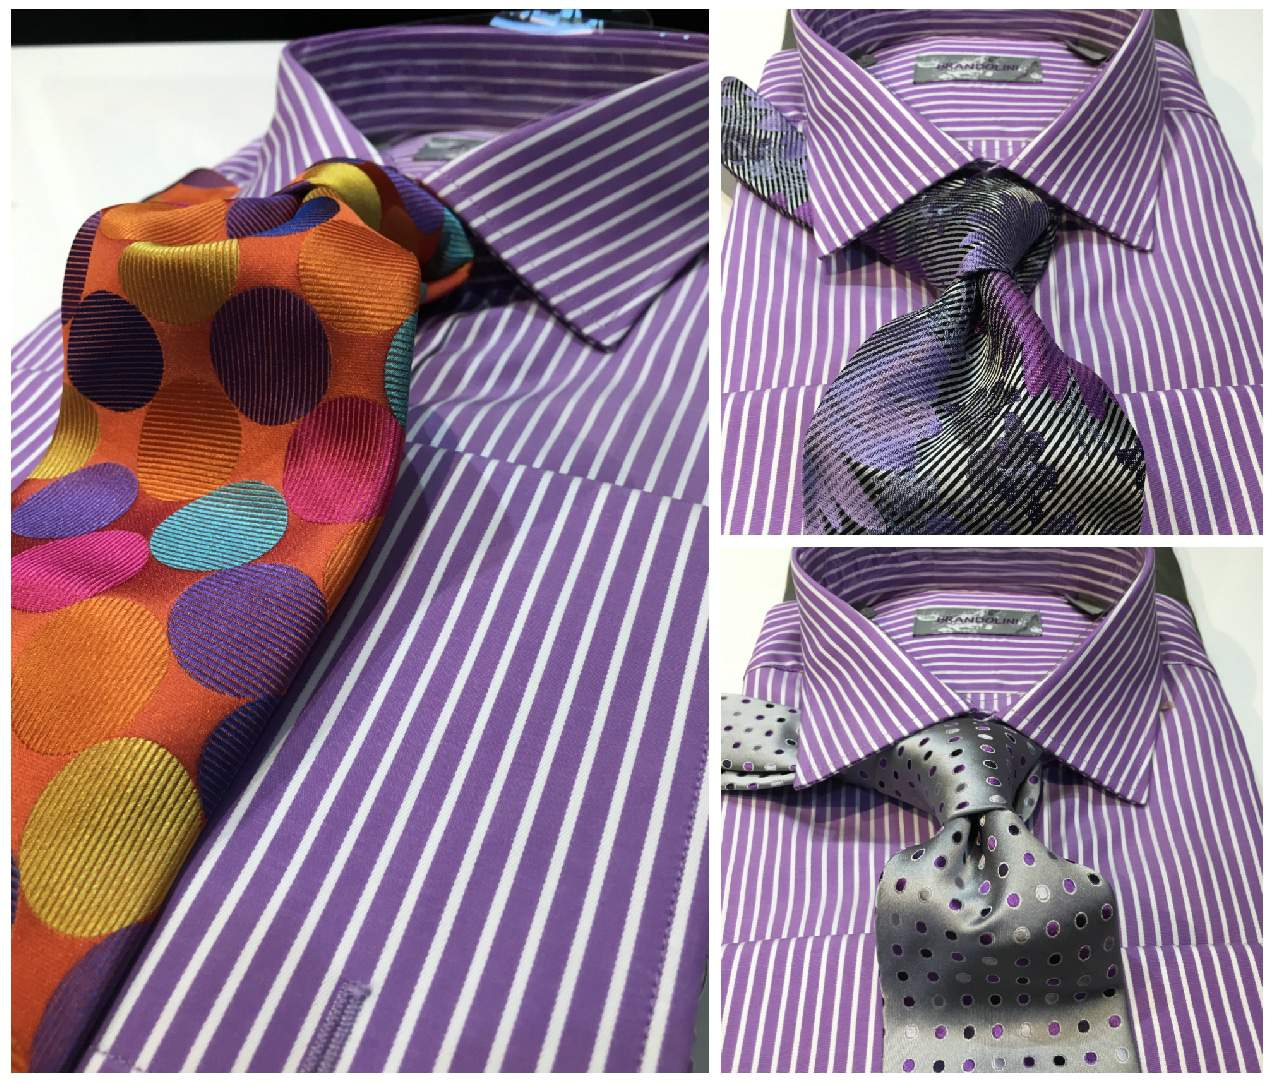 How to mix patterns on shirt and tie